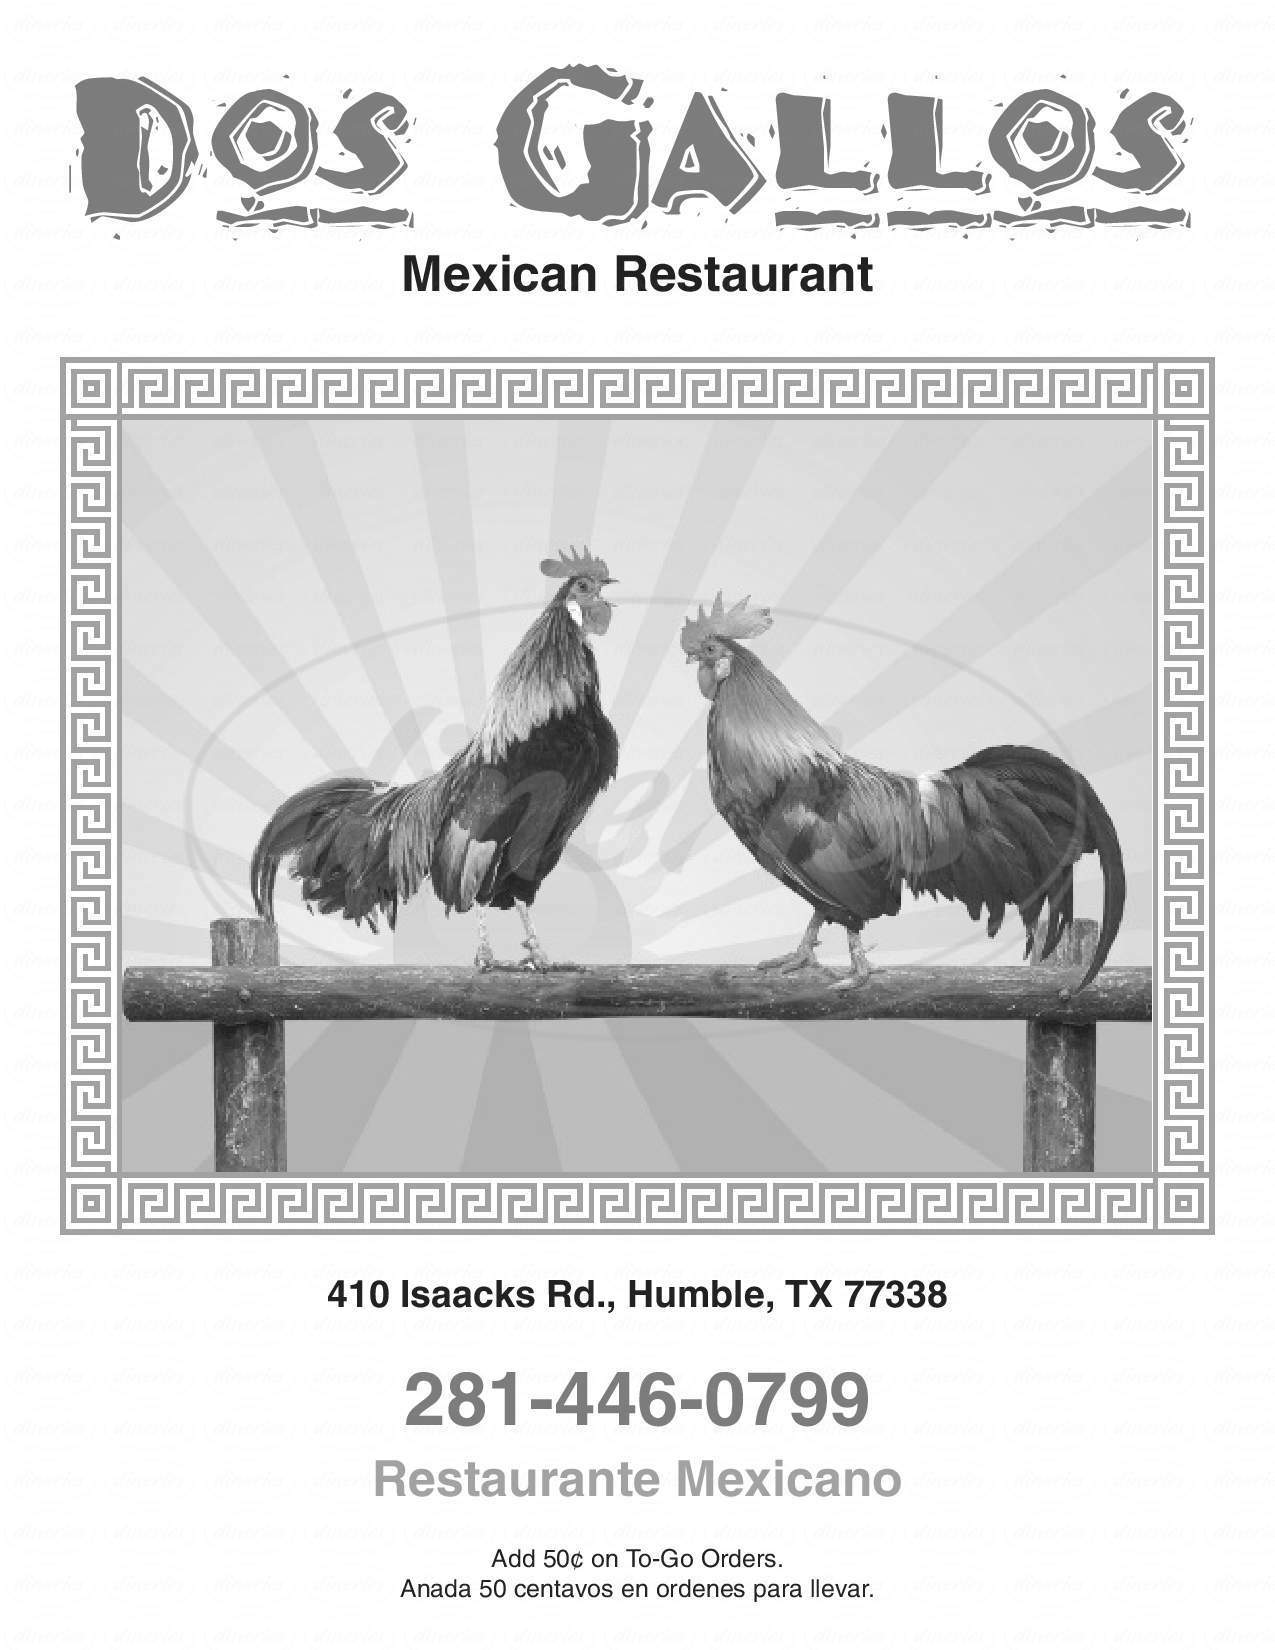 menu for Dos Gallos